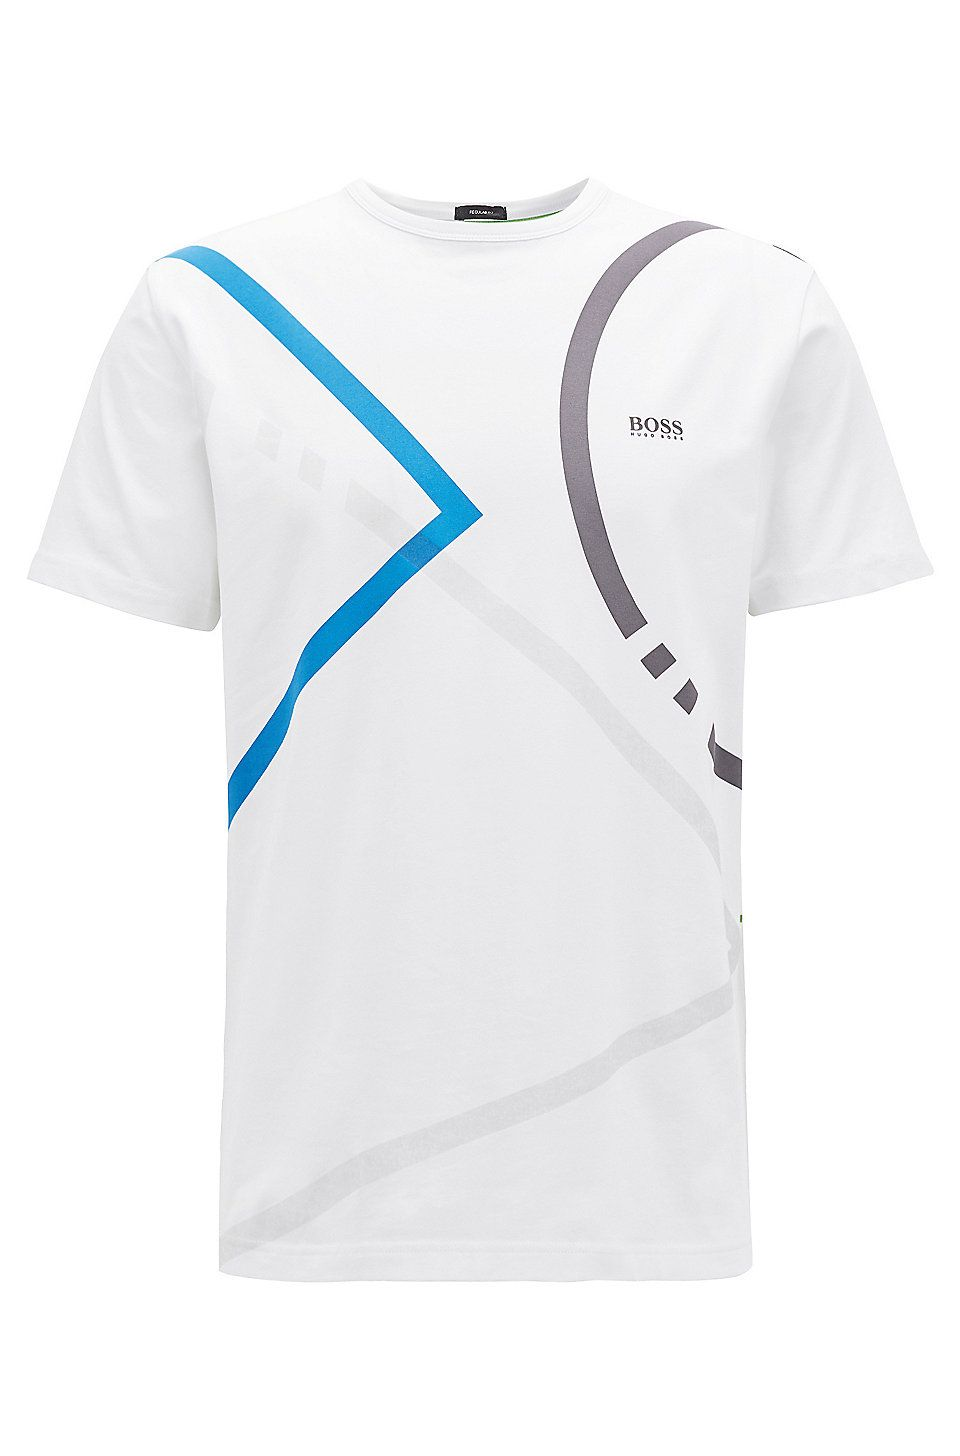 68f9956e0 HUGO BOSS Stretch-cotton jersey T-shirt with placement print - White T- Shirts from BOSS for Men in the official HUGO BOSS Online Store free  shipping